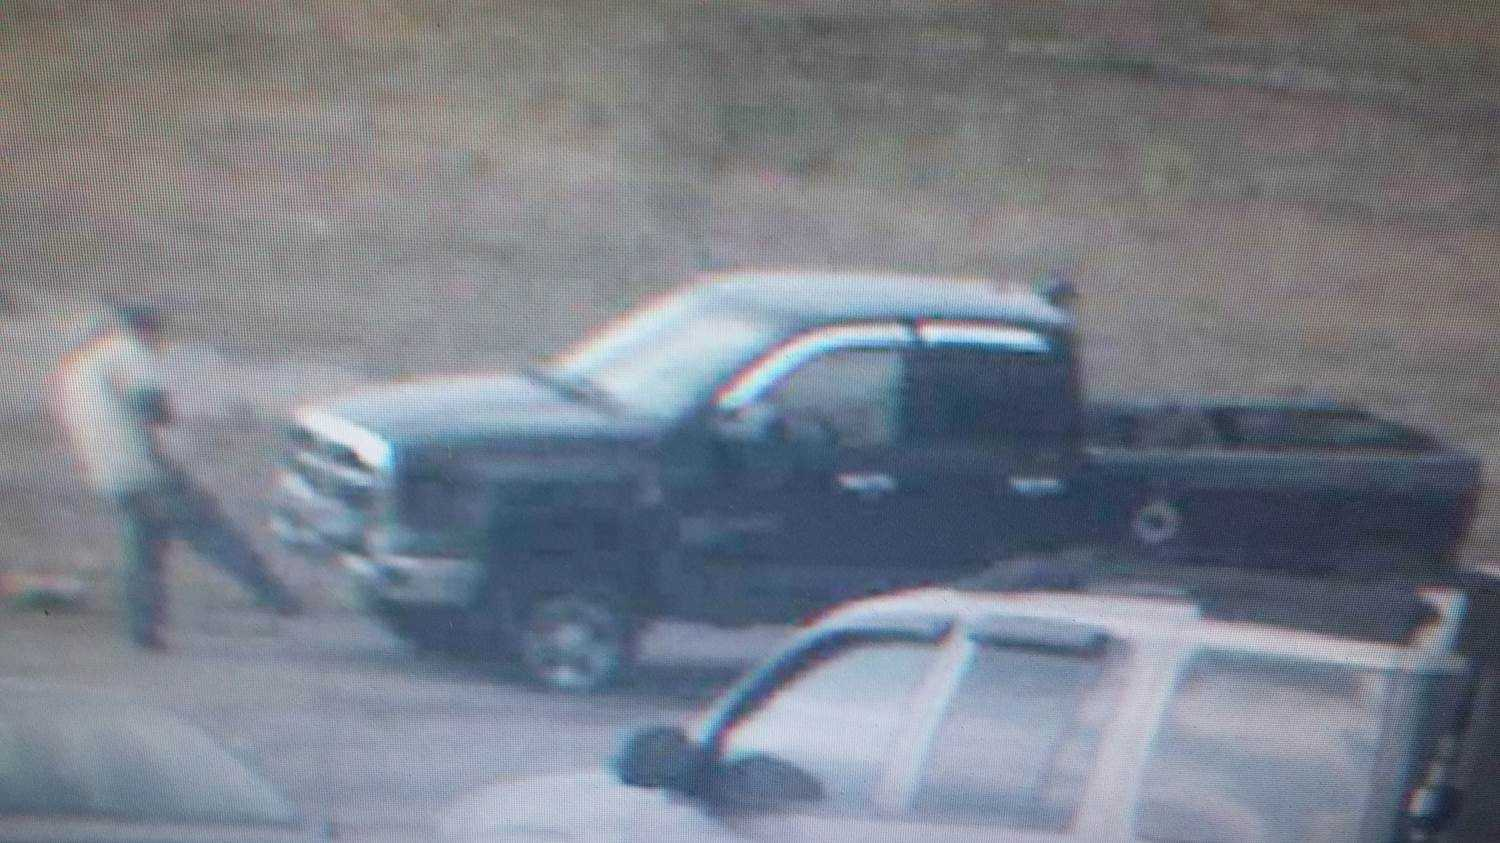 The Pennsylvania State Police are requesting the public's assistance in identifying the operator/driver of a vehicle involved in a Hit & Run on Route 31 in South Huntingdon Township in Westmoreland County on Thursday morning.